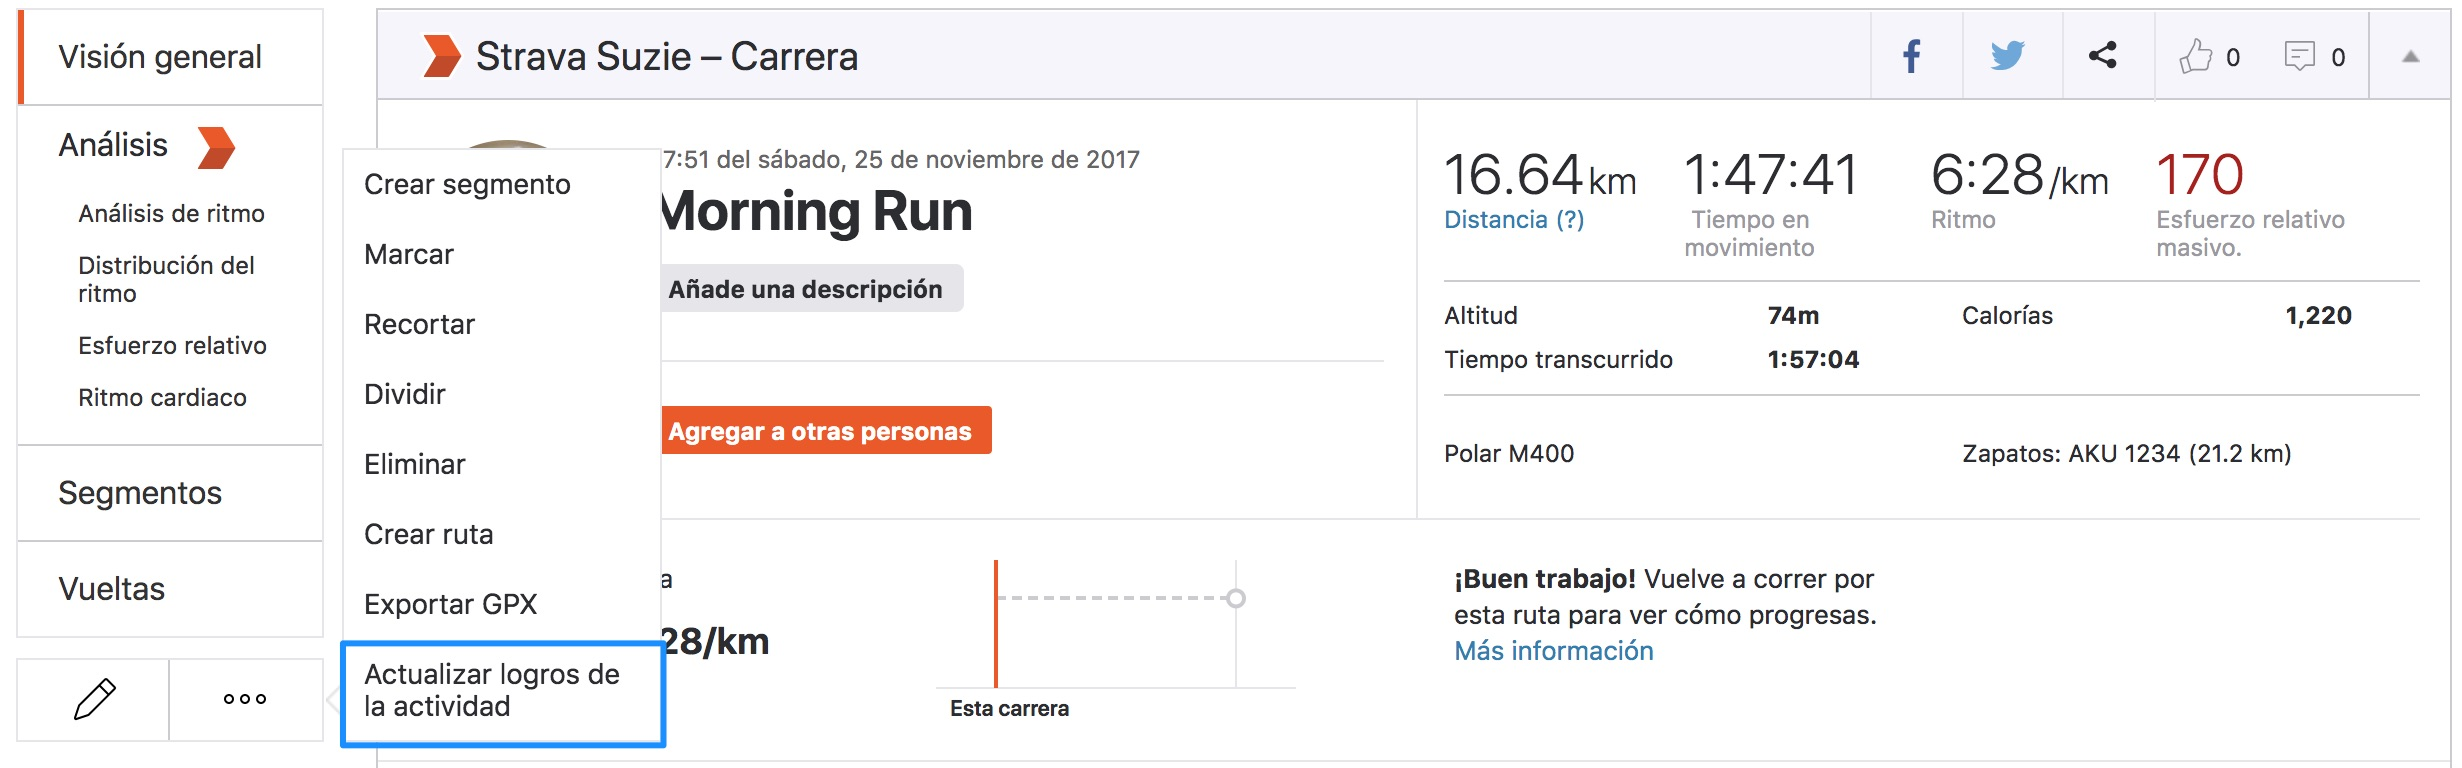 Morning_Run___Carrera___Strava.jpg